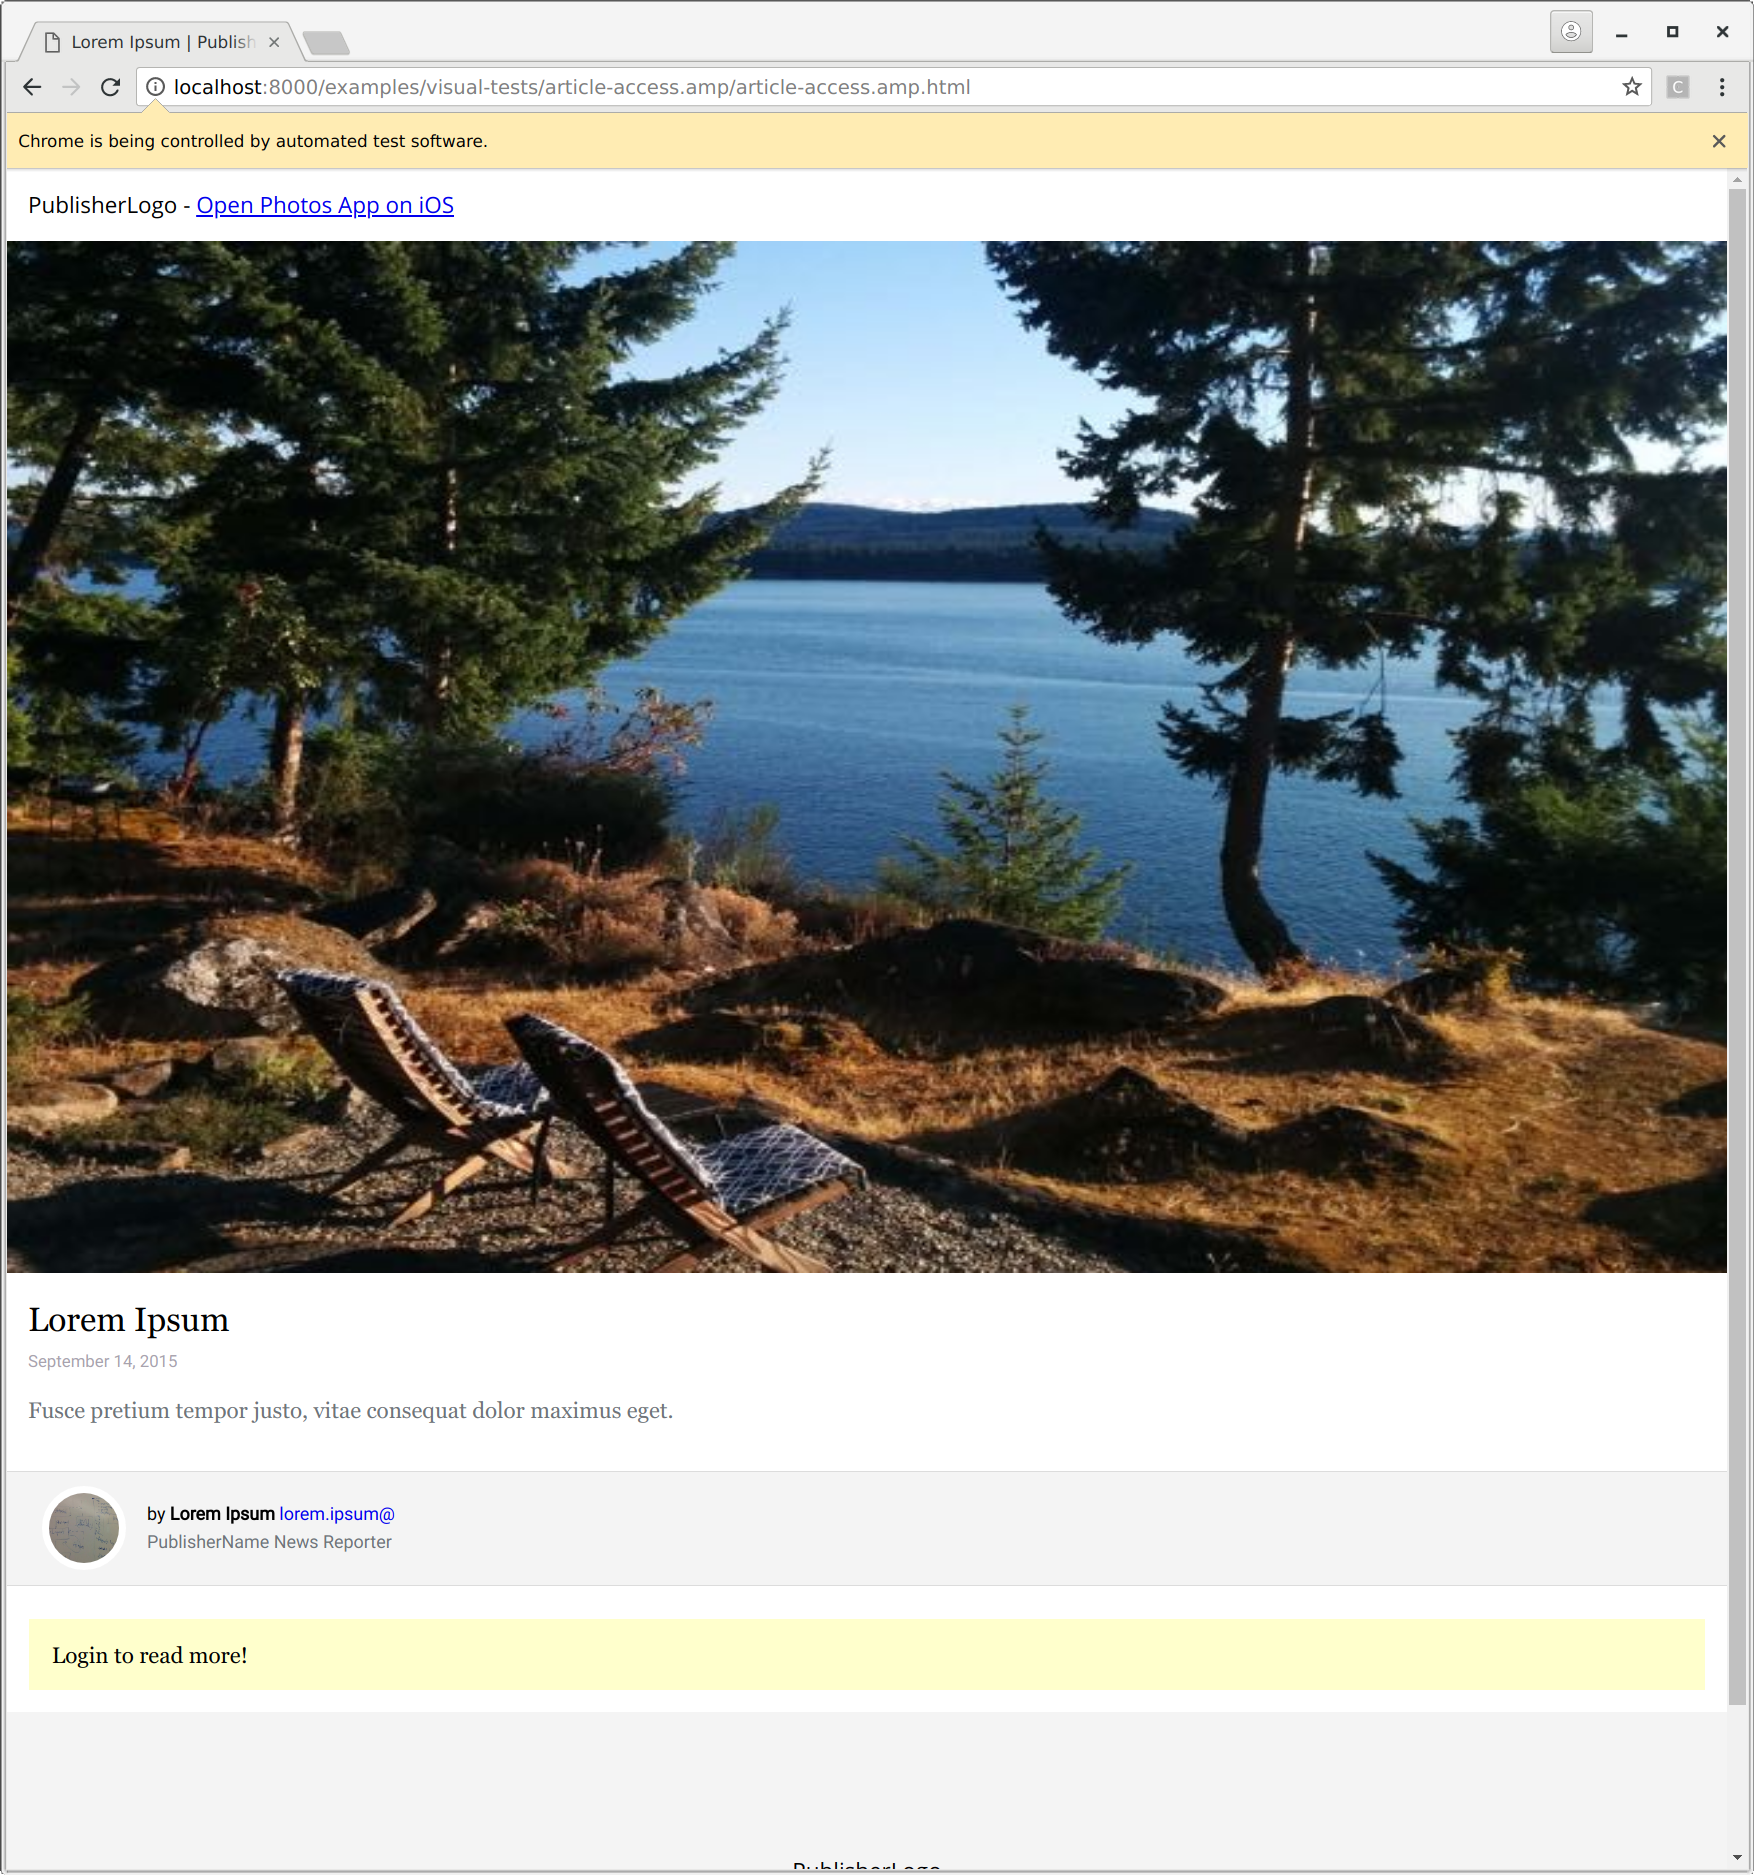 Enabling javascript causes images to double in height